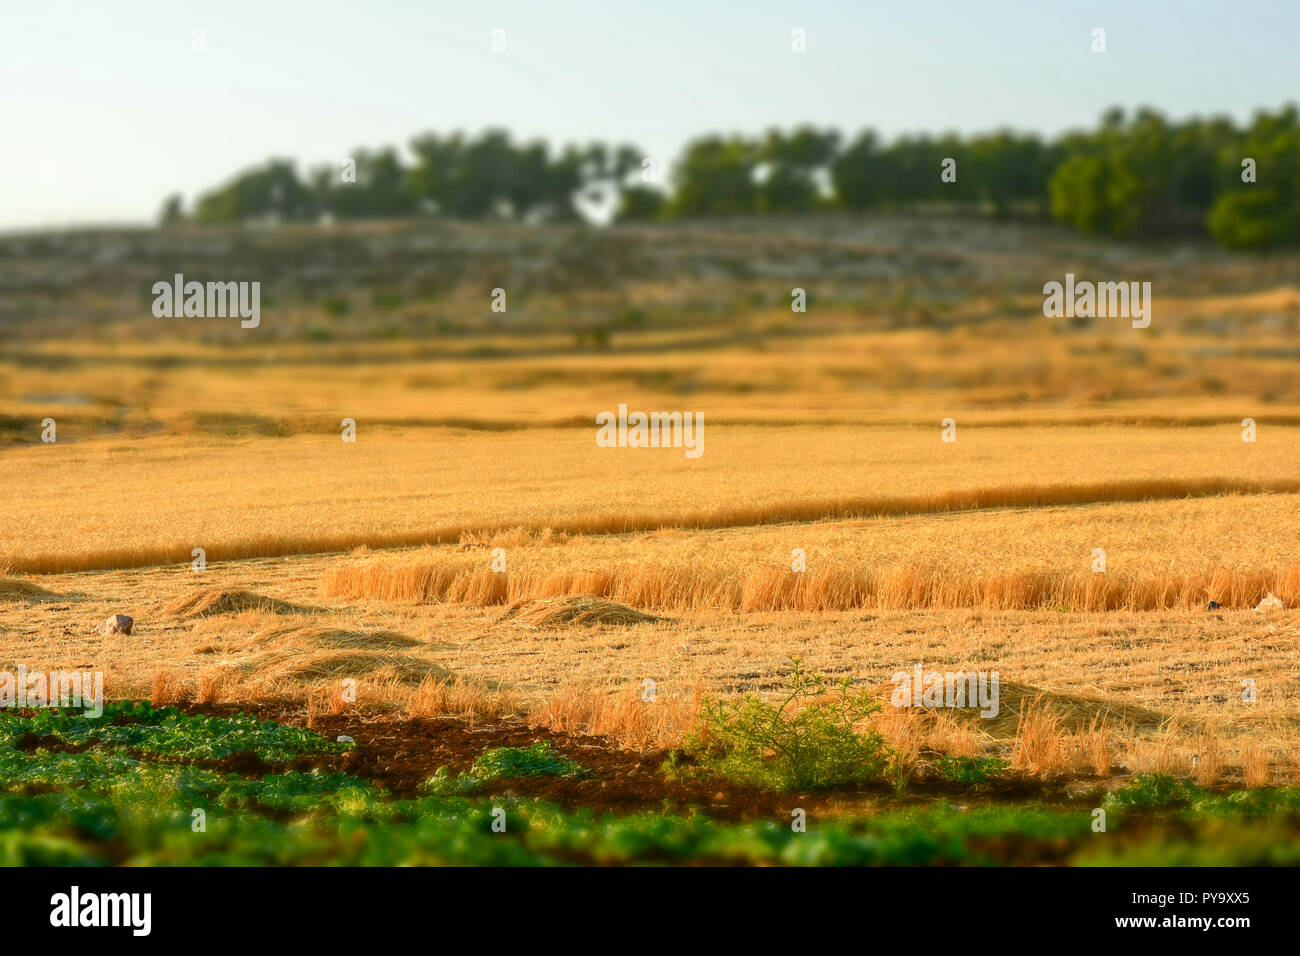 Barley field, Harvest season in summer Stock Photo